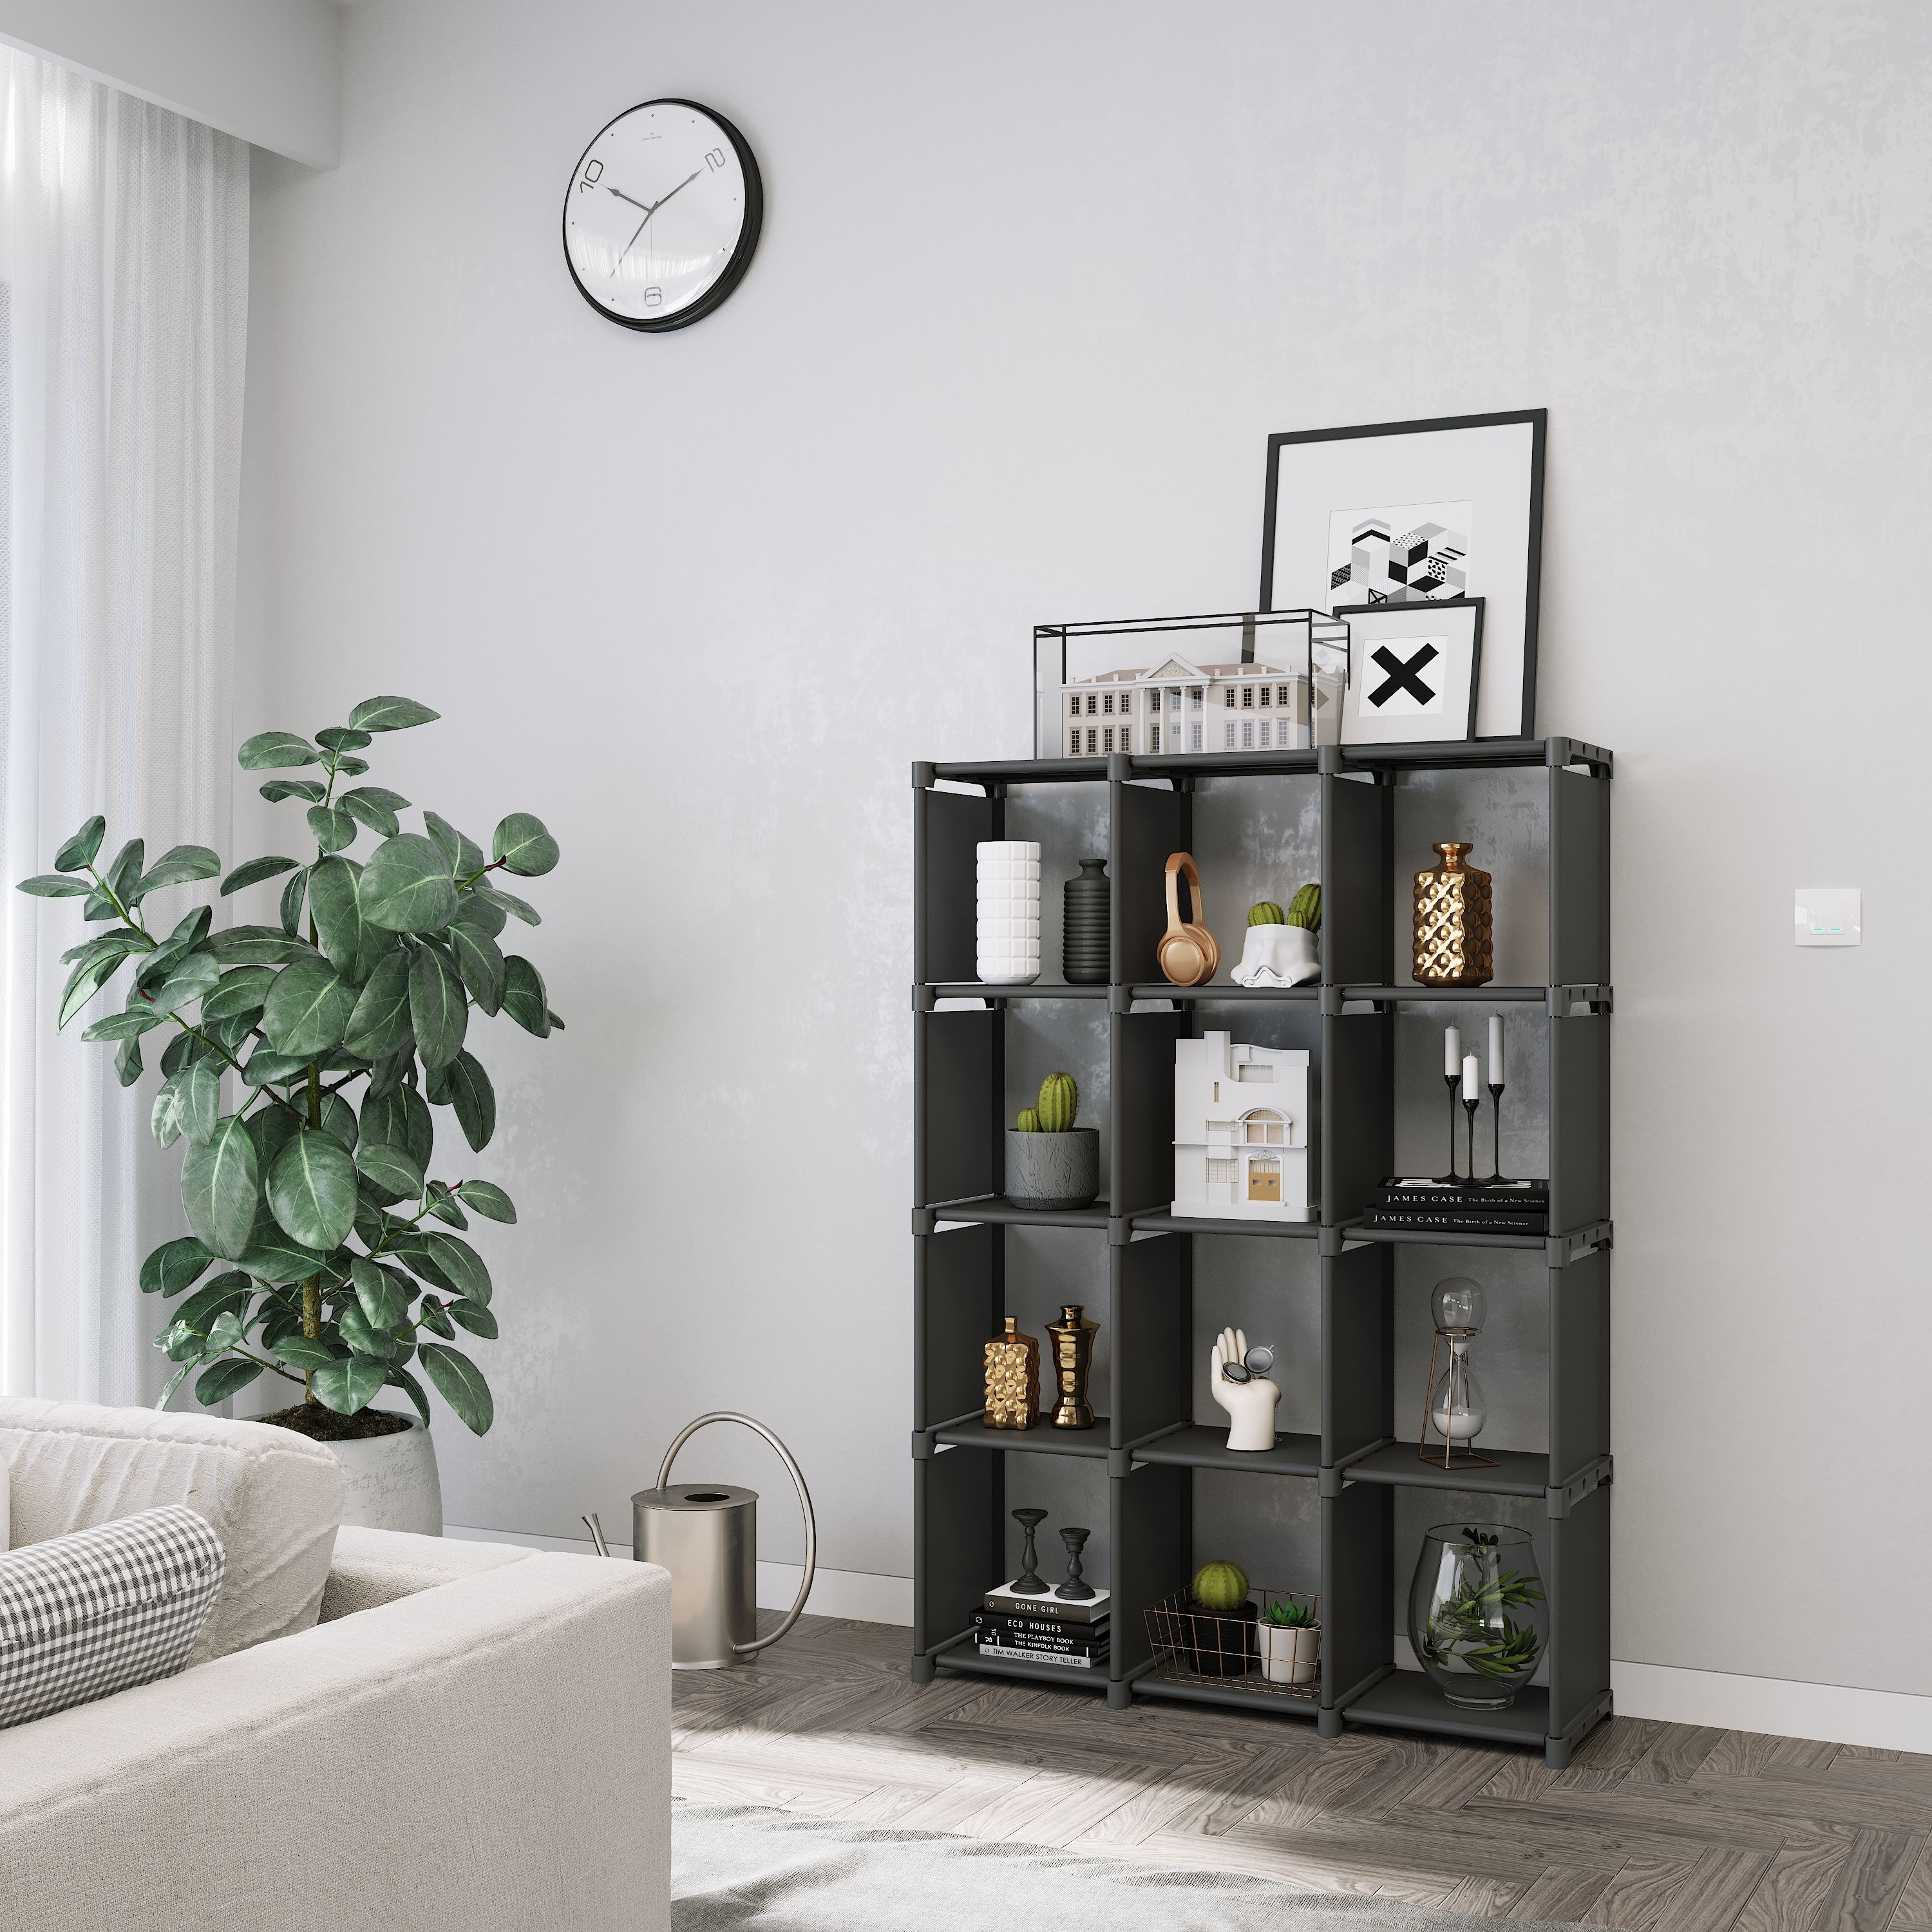 12 Cubes Open Organizer With Images Cube Storage Shelves Cube